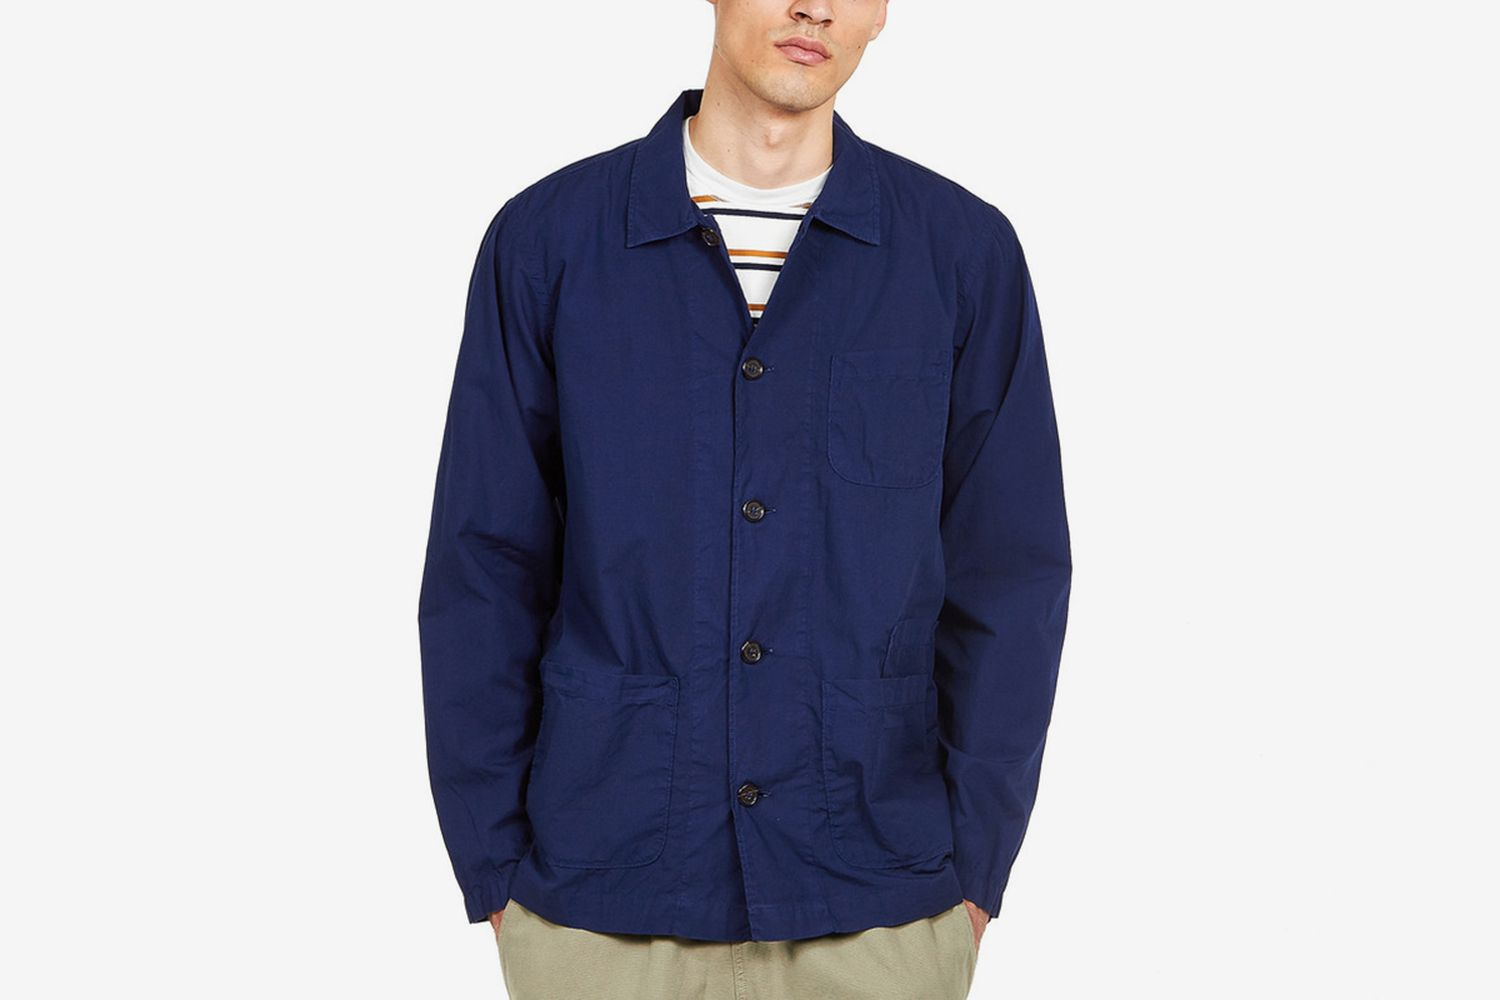 Bakers Overshirt